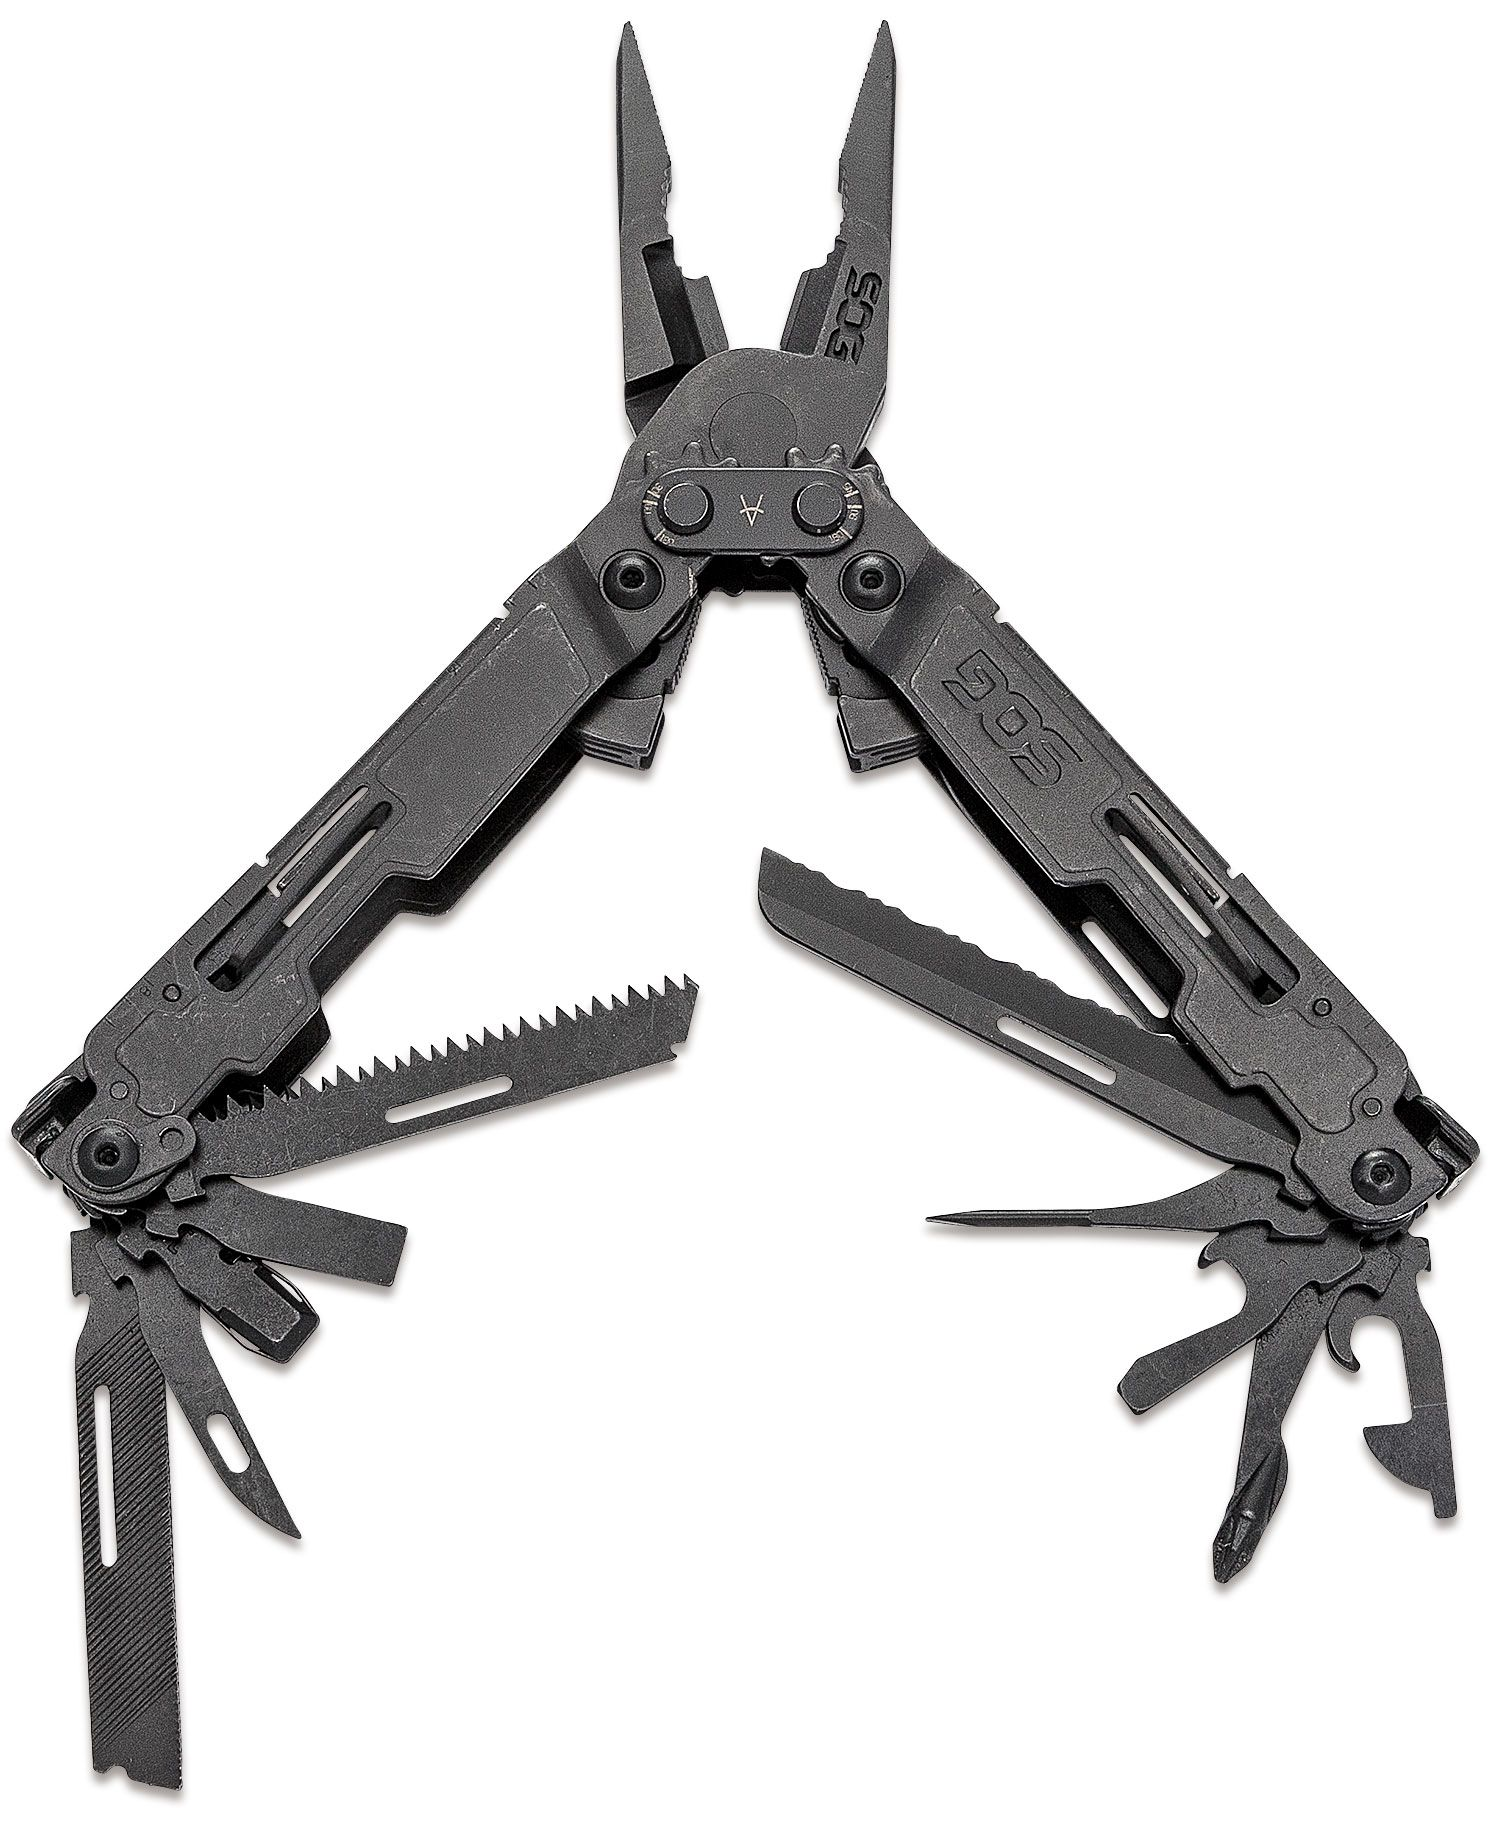 SOG PowerAccess Deluxe Multi-Tool (Black) with 21 Tools and 12-Piece Bit Kit, Nylon Sheath